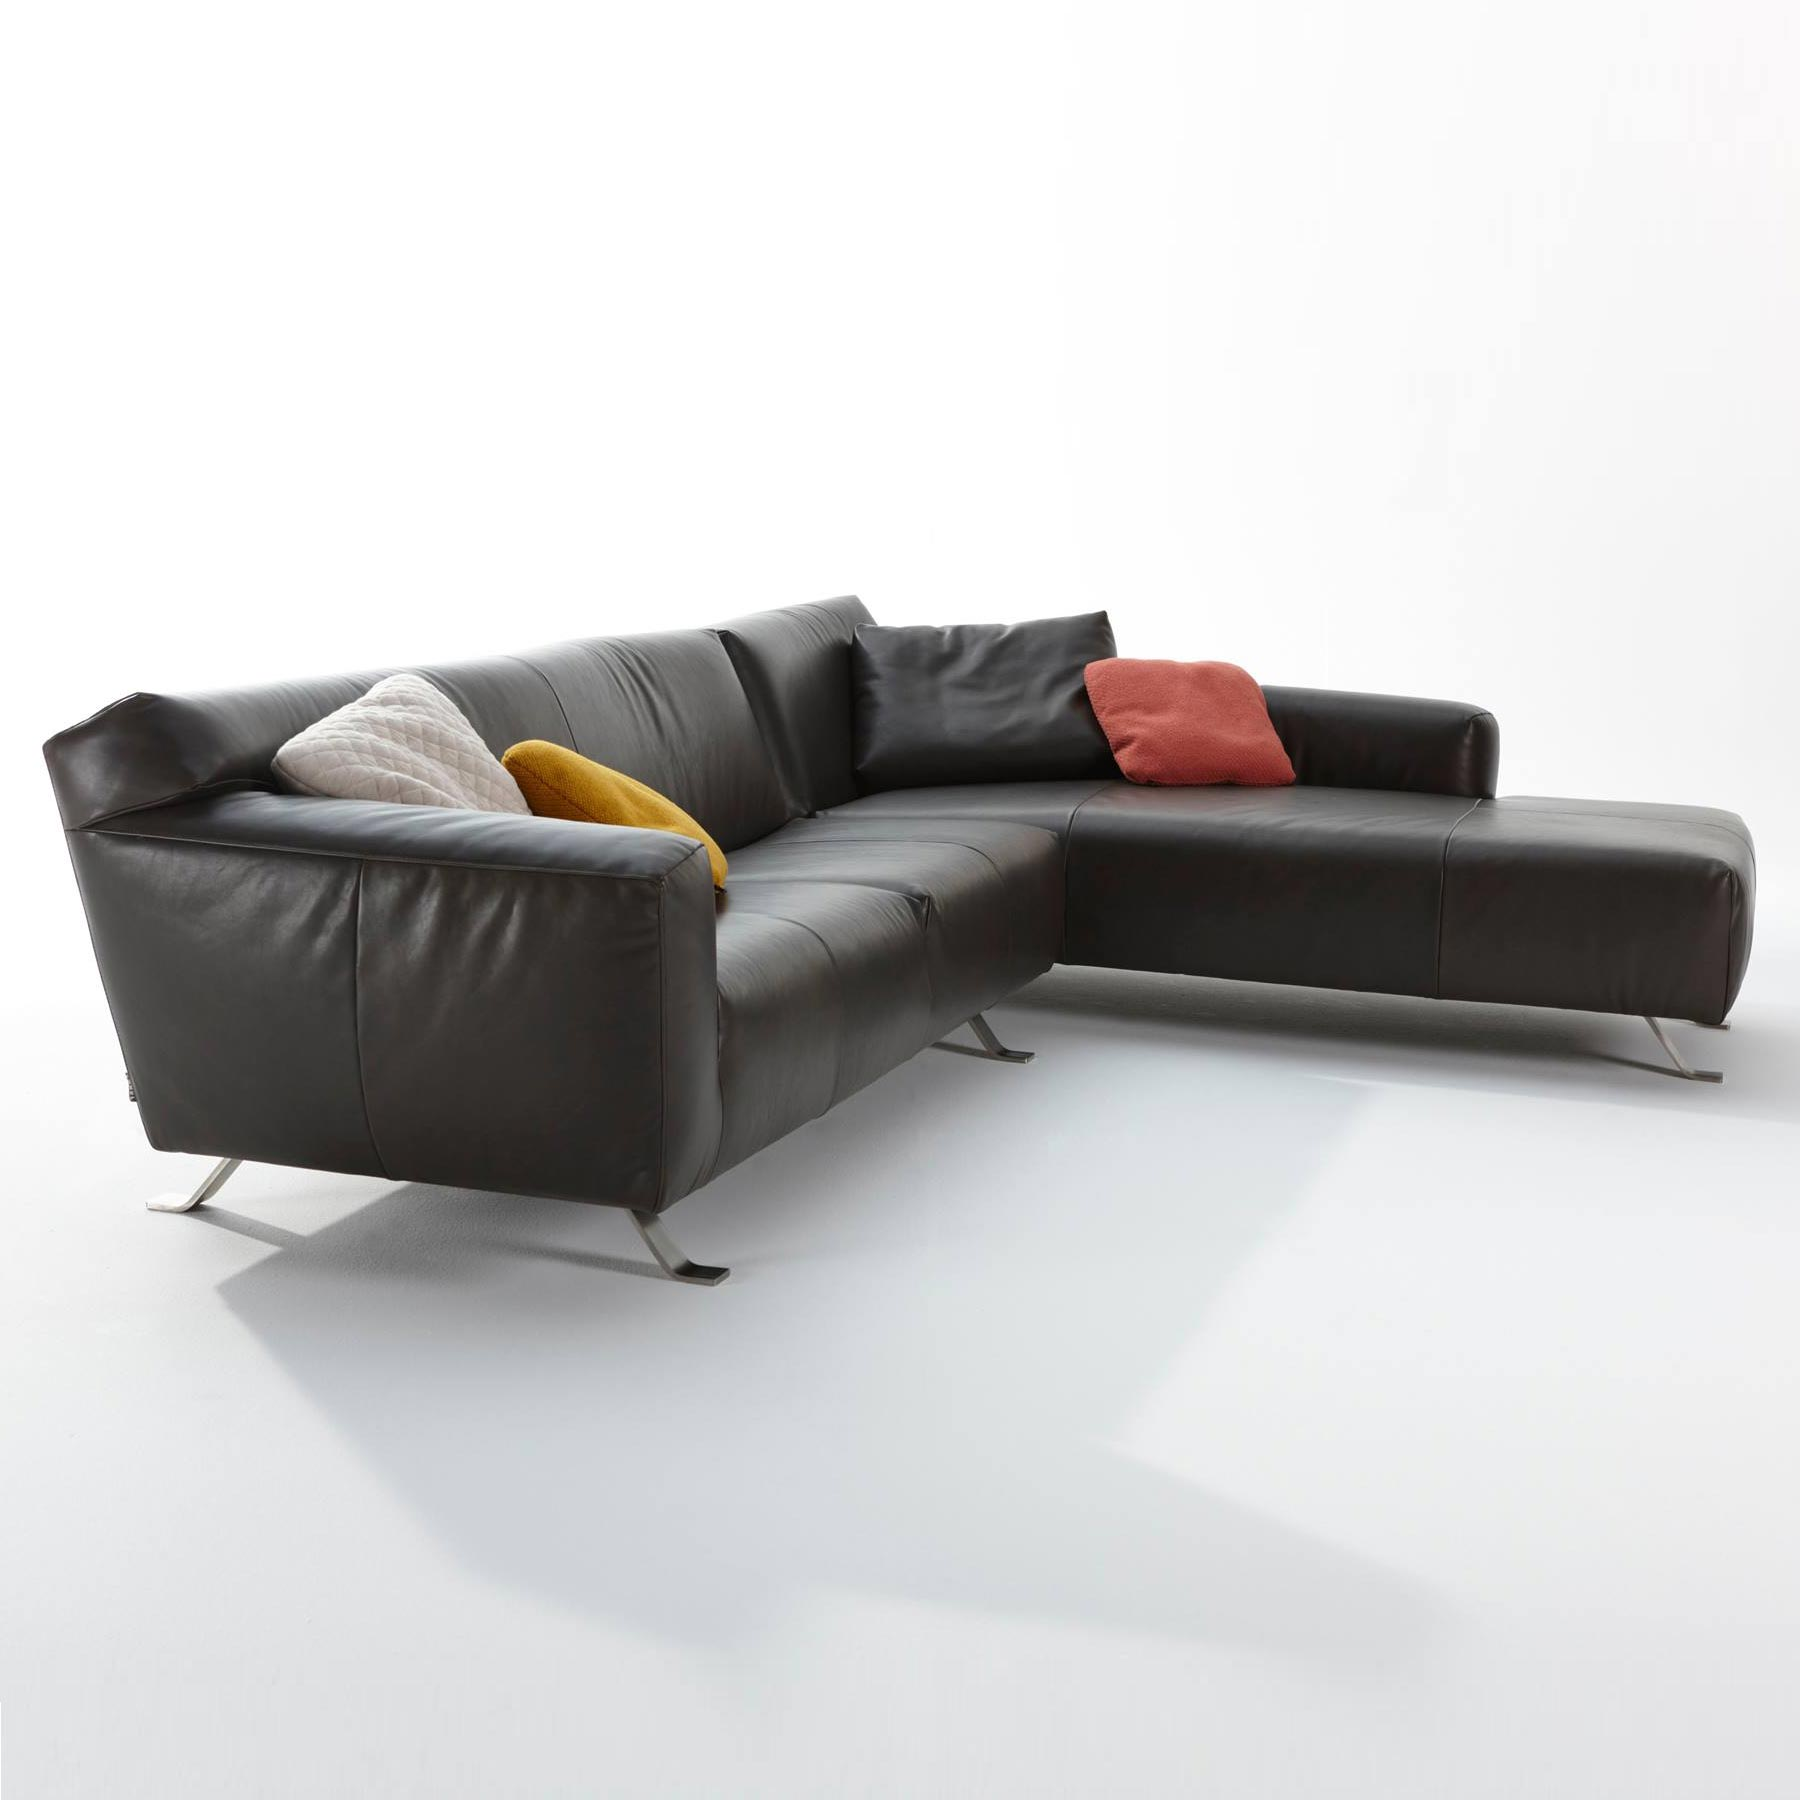 santiago sofa w chaise lounge modern intentions shop